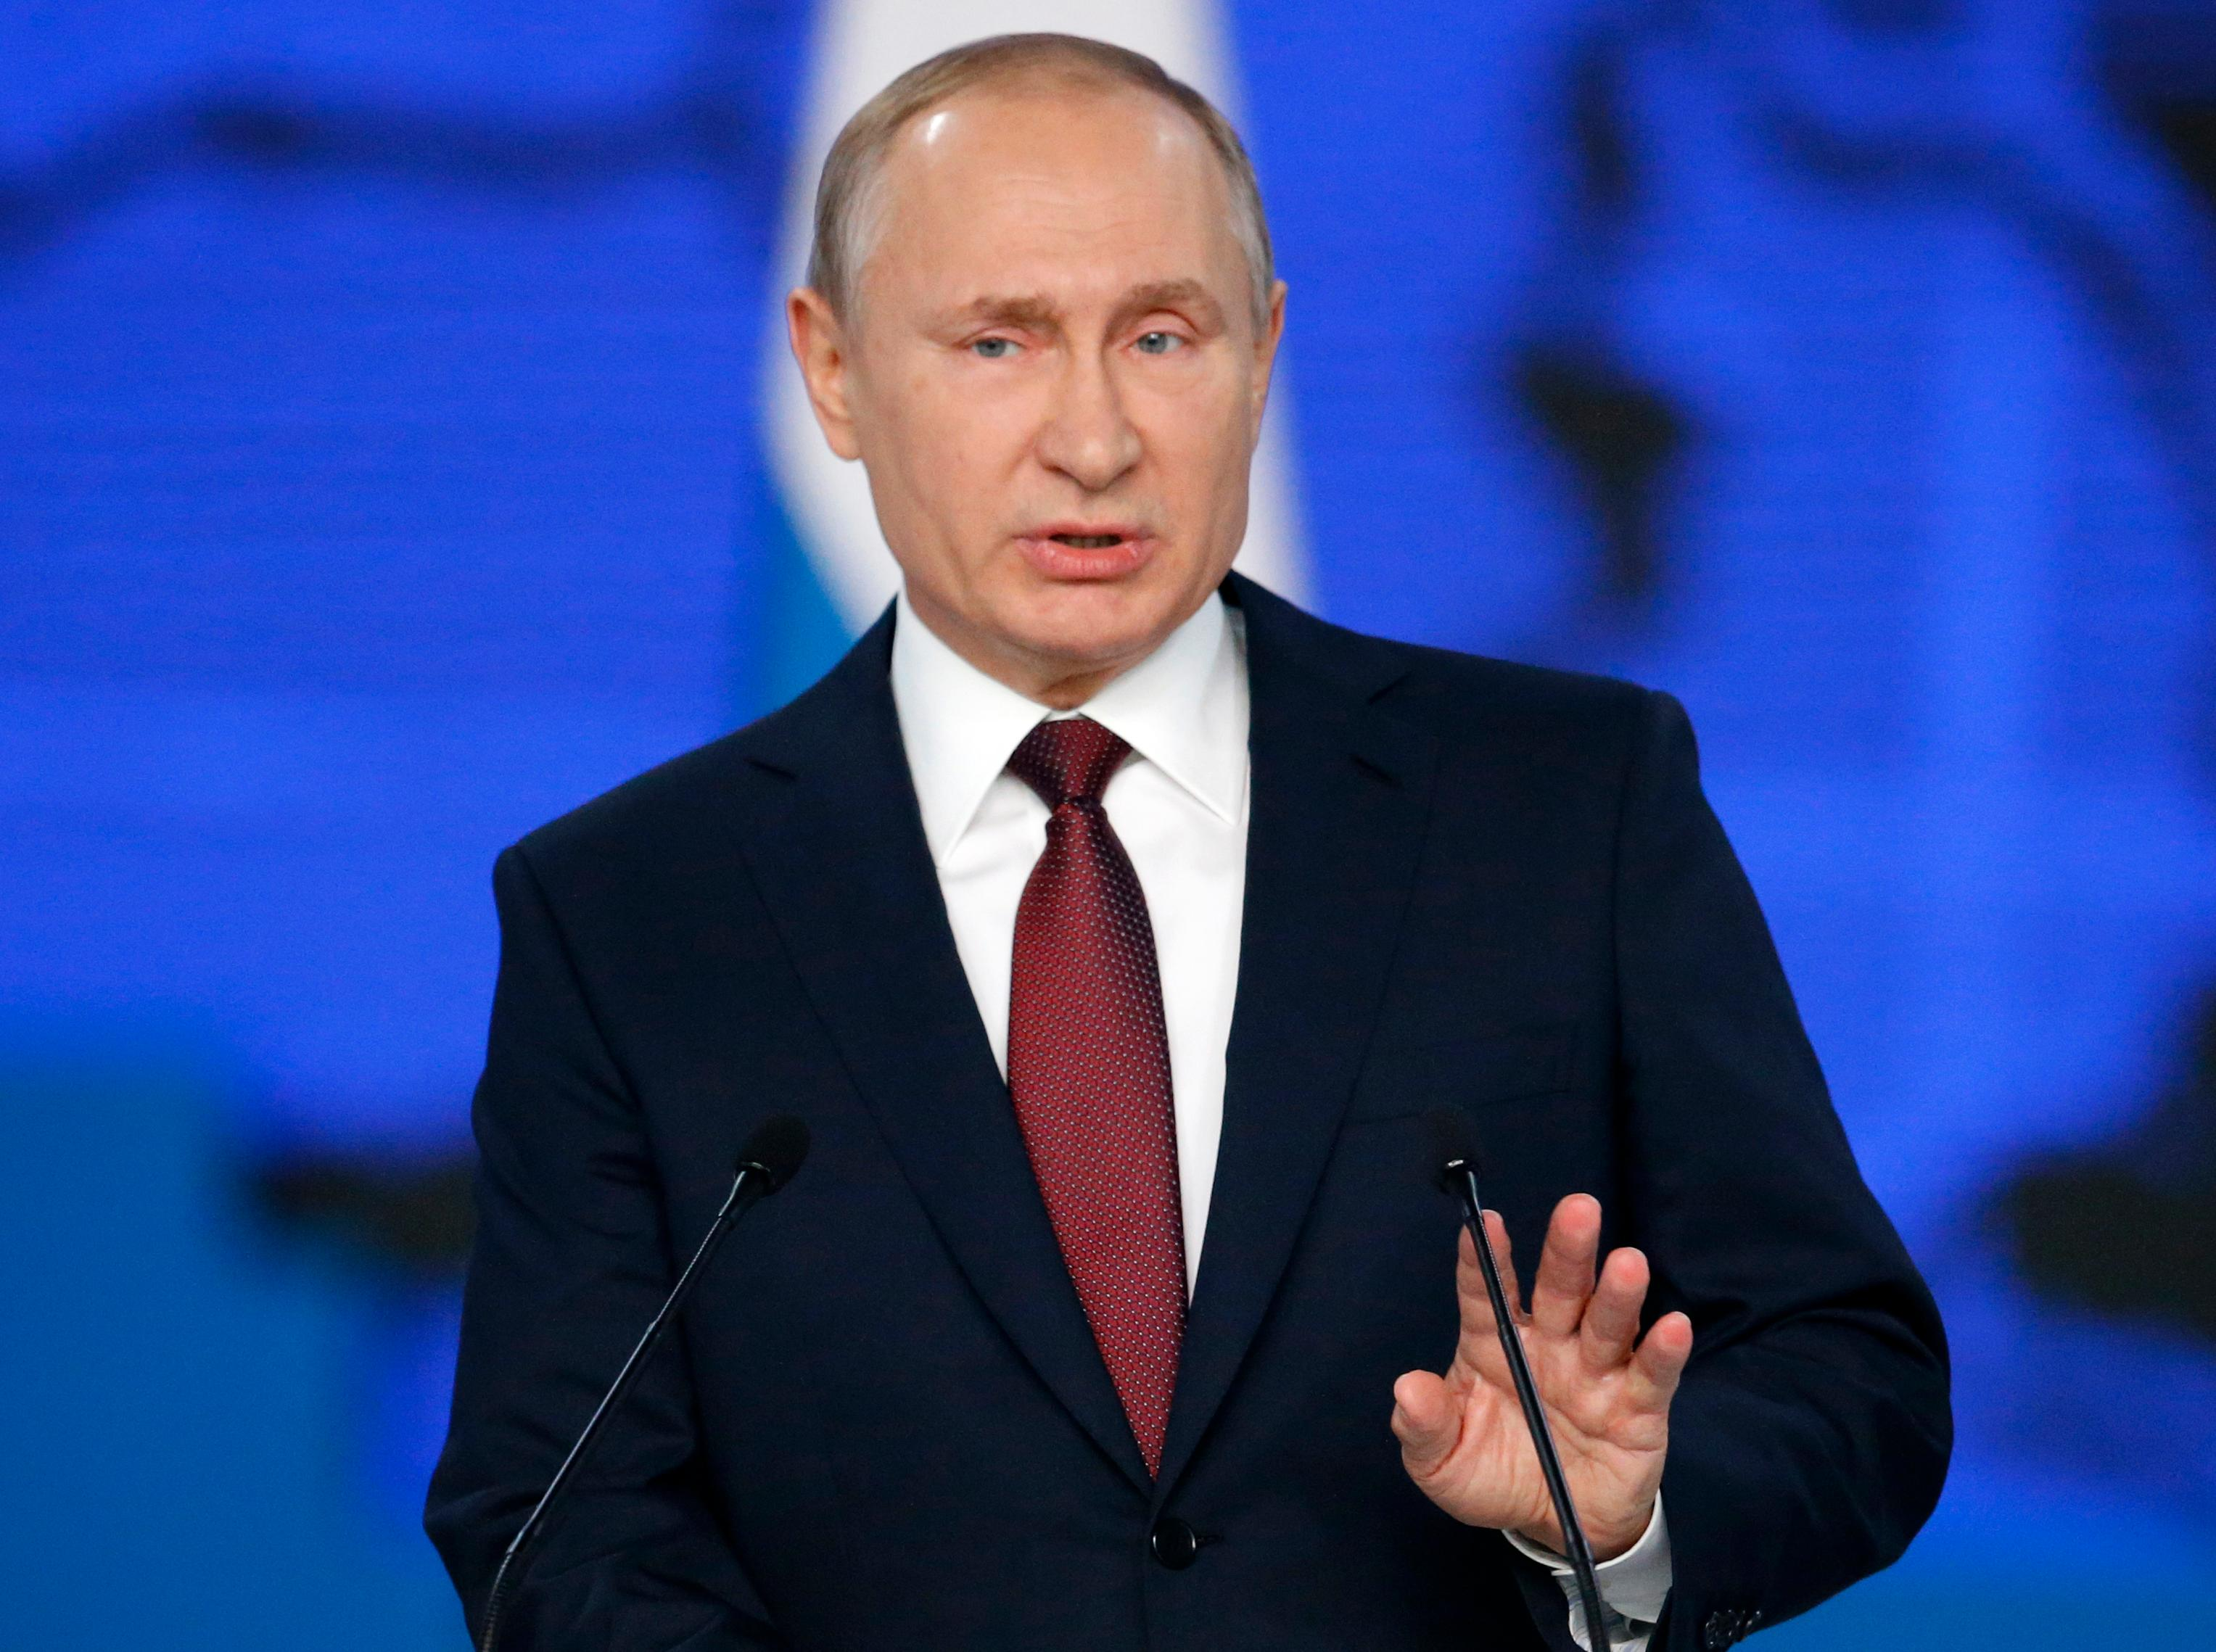 Russian President Vladimir Putin delivers a state-of-the-nation address in Moscow, Russia, Wednesday, Feb. 20, 2019. (AP Photo/Alexander Zemlianichenko)